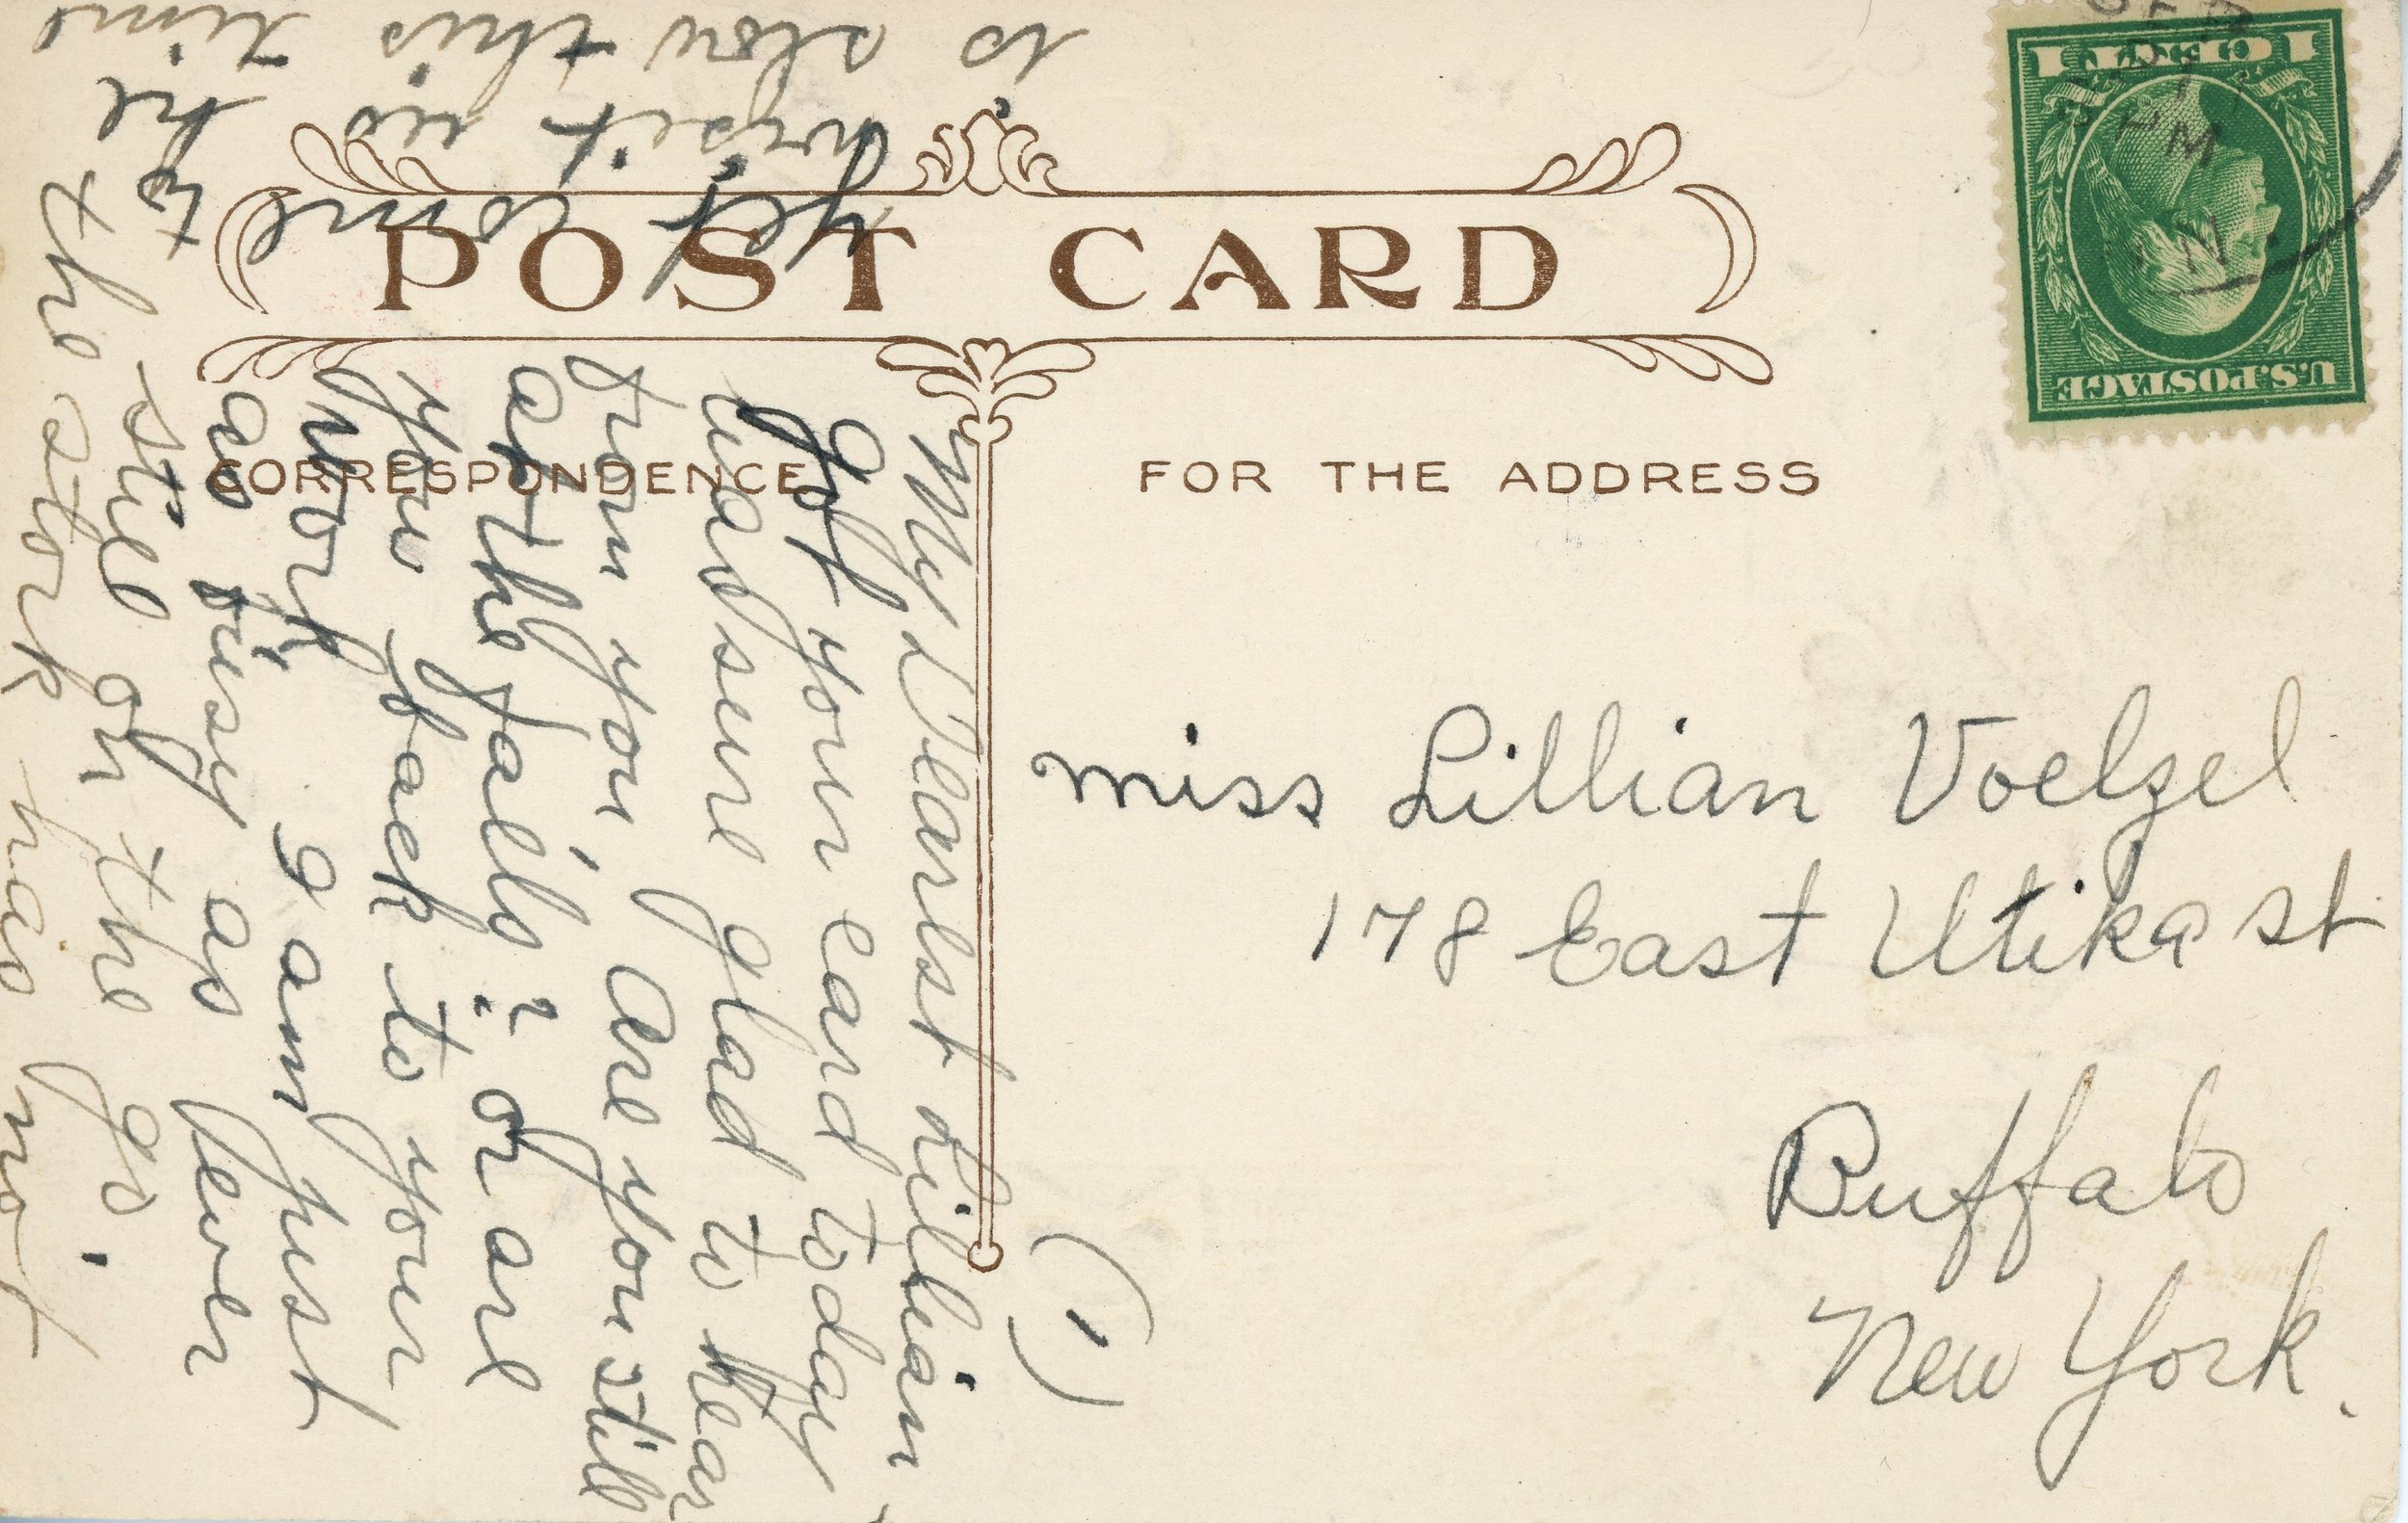 """Sent to Buffalo, NY in September 1911. """"My Dearest Lillian - Got your card today. Was sure glad to hear from you. Are you still at the falls? Or are you back to your work. I am just as busy as ever. Still on the go. The stork has not yet come to visit us, he is slow this time."""""""